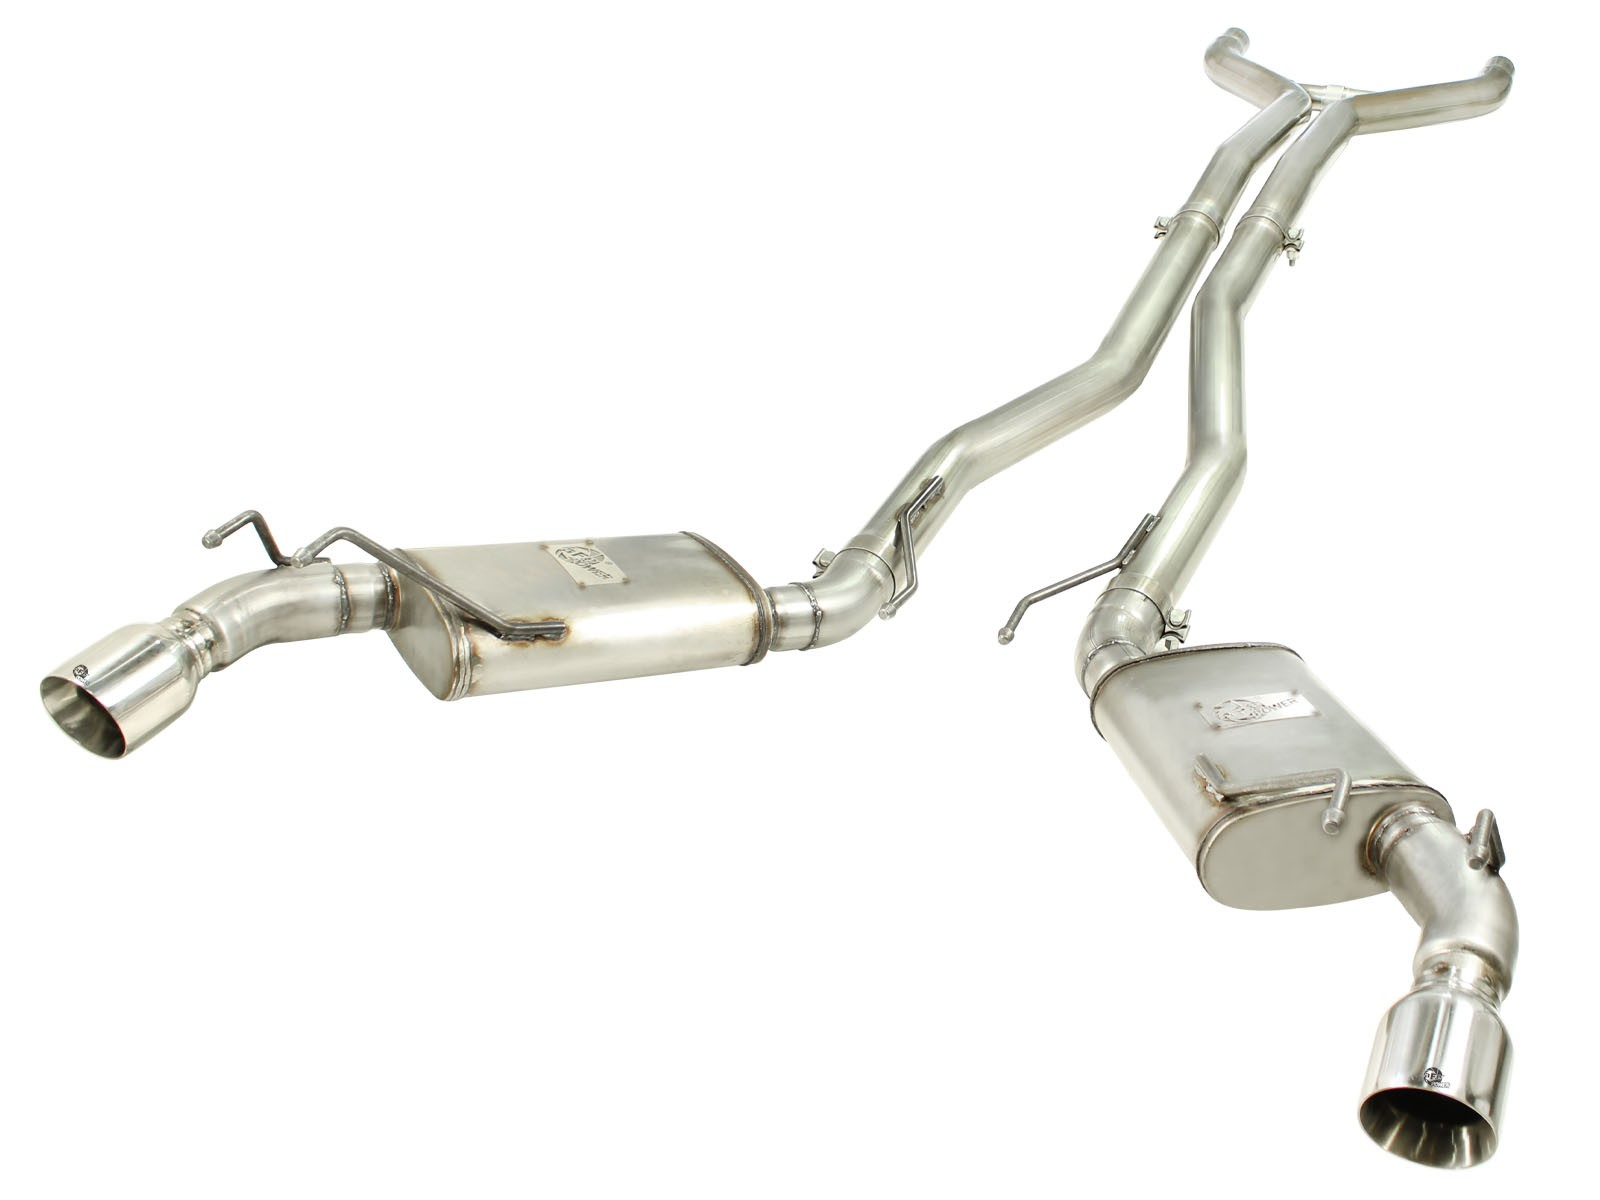 "aFe POWER 49-44039-P MACH Force-Xp 3"" 409 Stainless Steel Cat-Back Exhaust System"